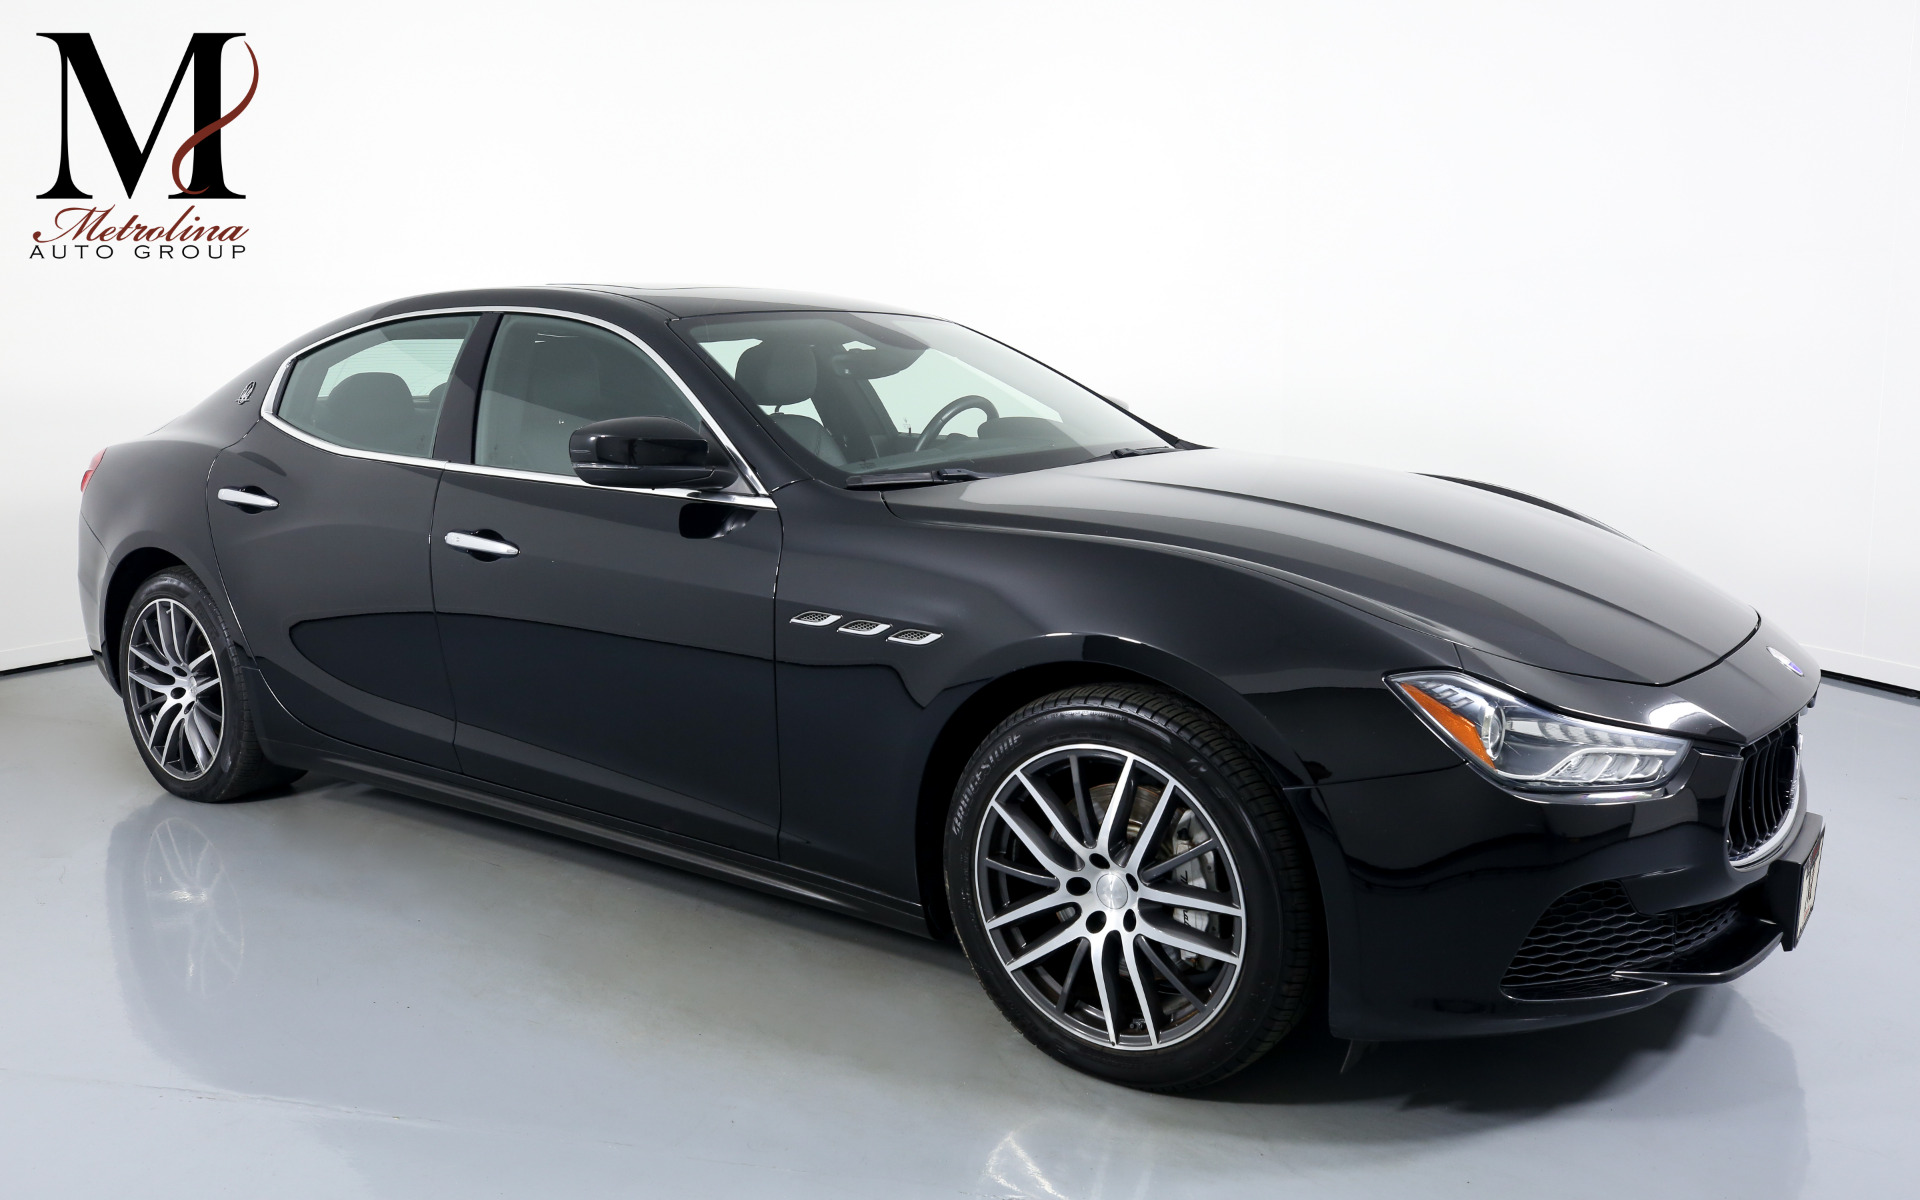 Used 2017 Maserati Ghibli Base 4dr Sedan for sale Sold at Metrolina Auto Group in Charlotte NC 28217 - 1